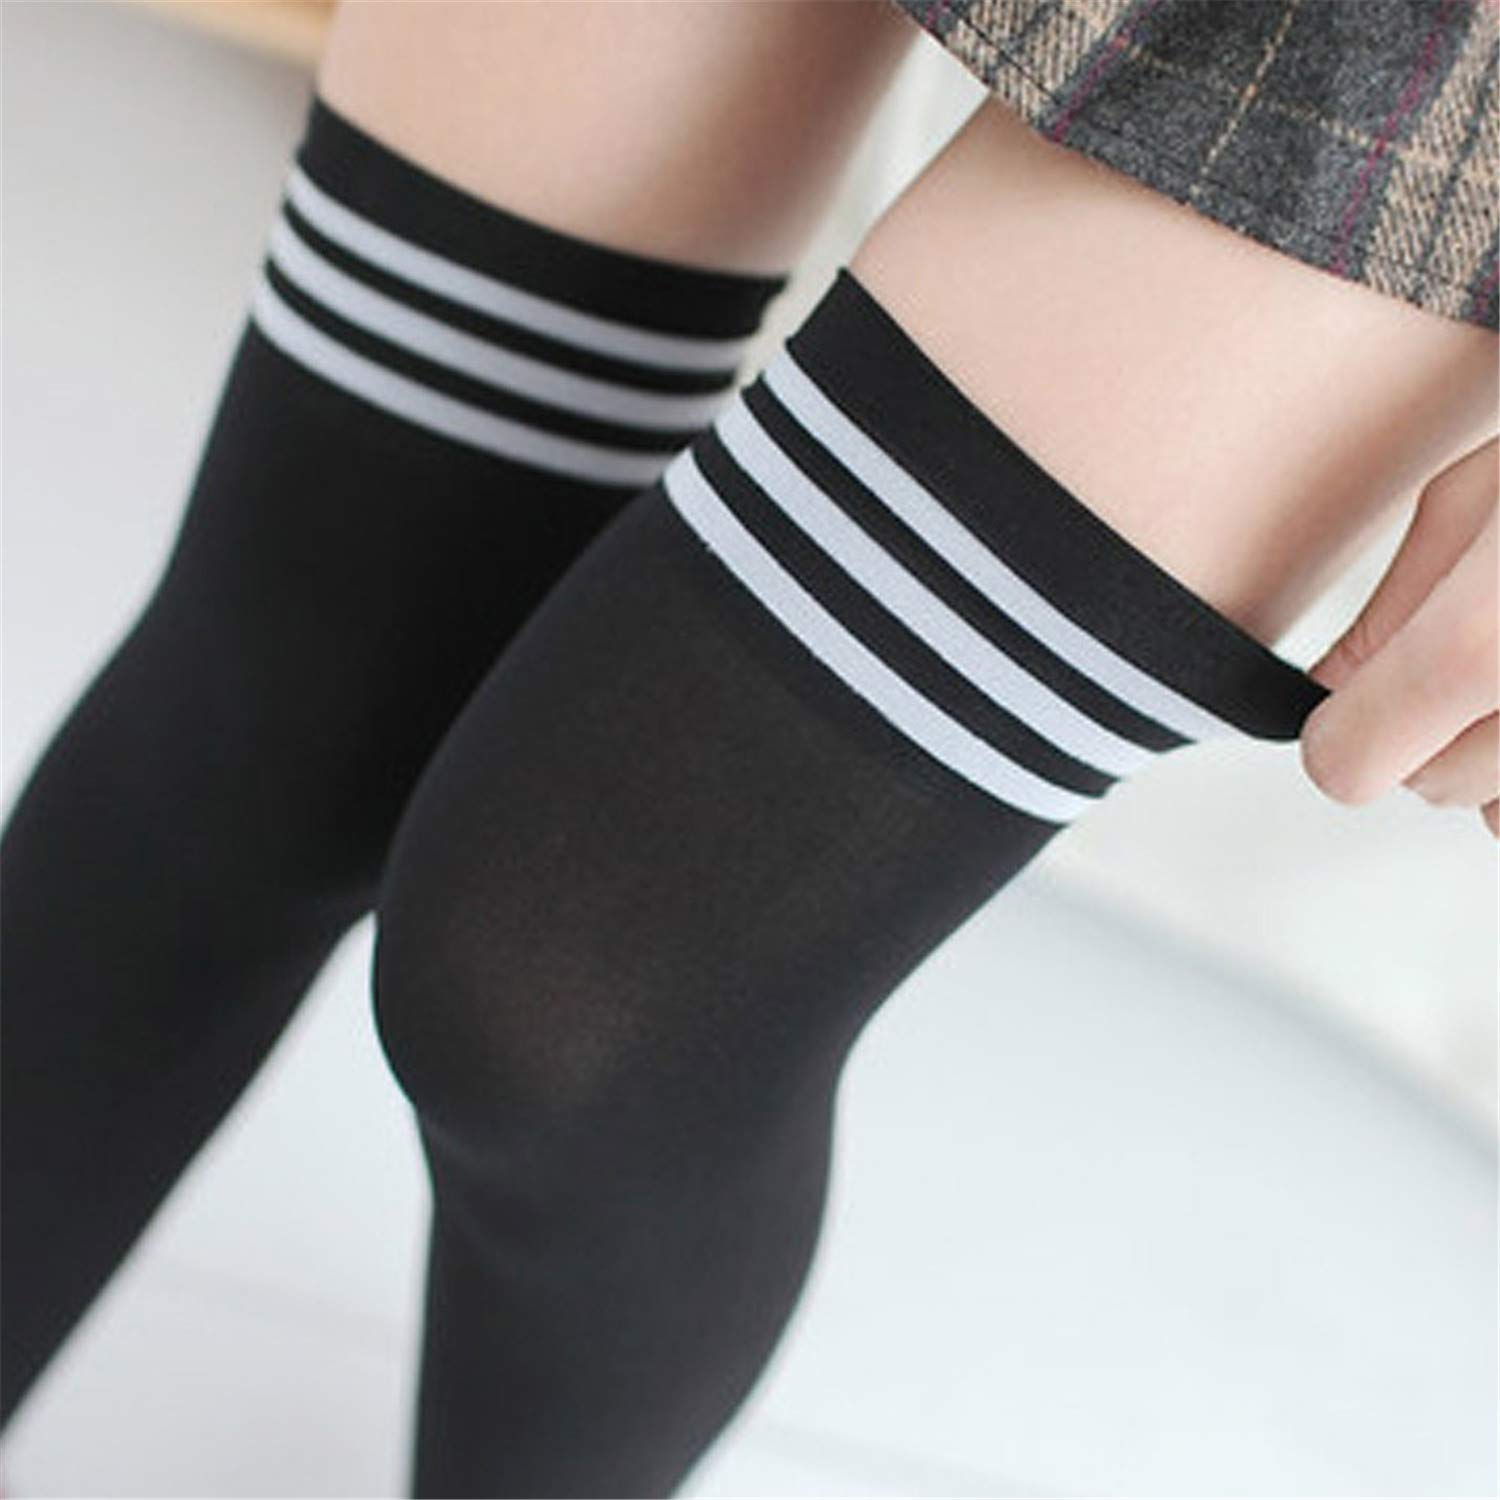 Thigh High Over Knee High Socks Girls Womens New Autumn Christmas Stockings Tights chaussettes femme harajuku